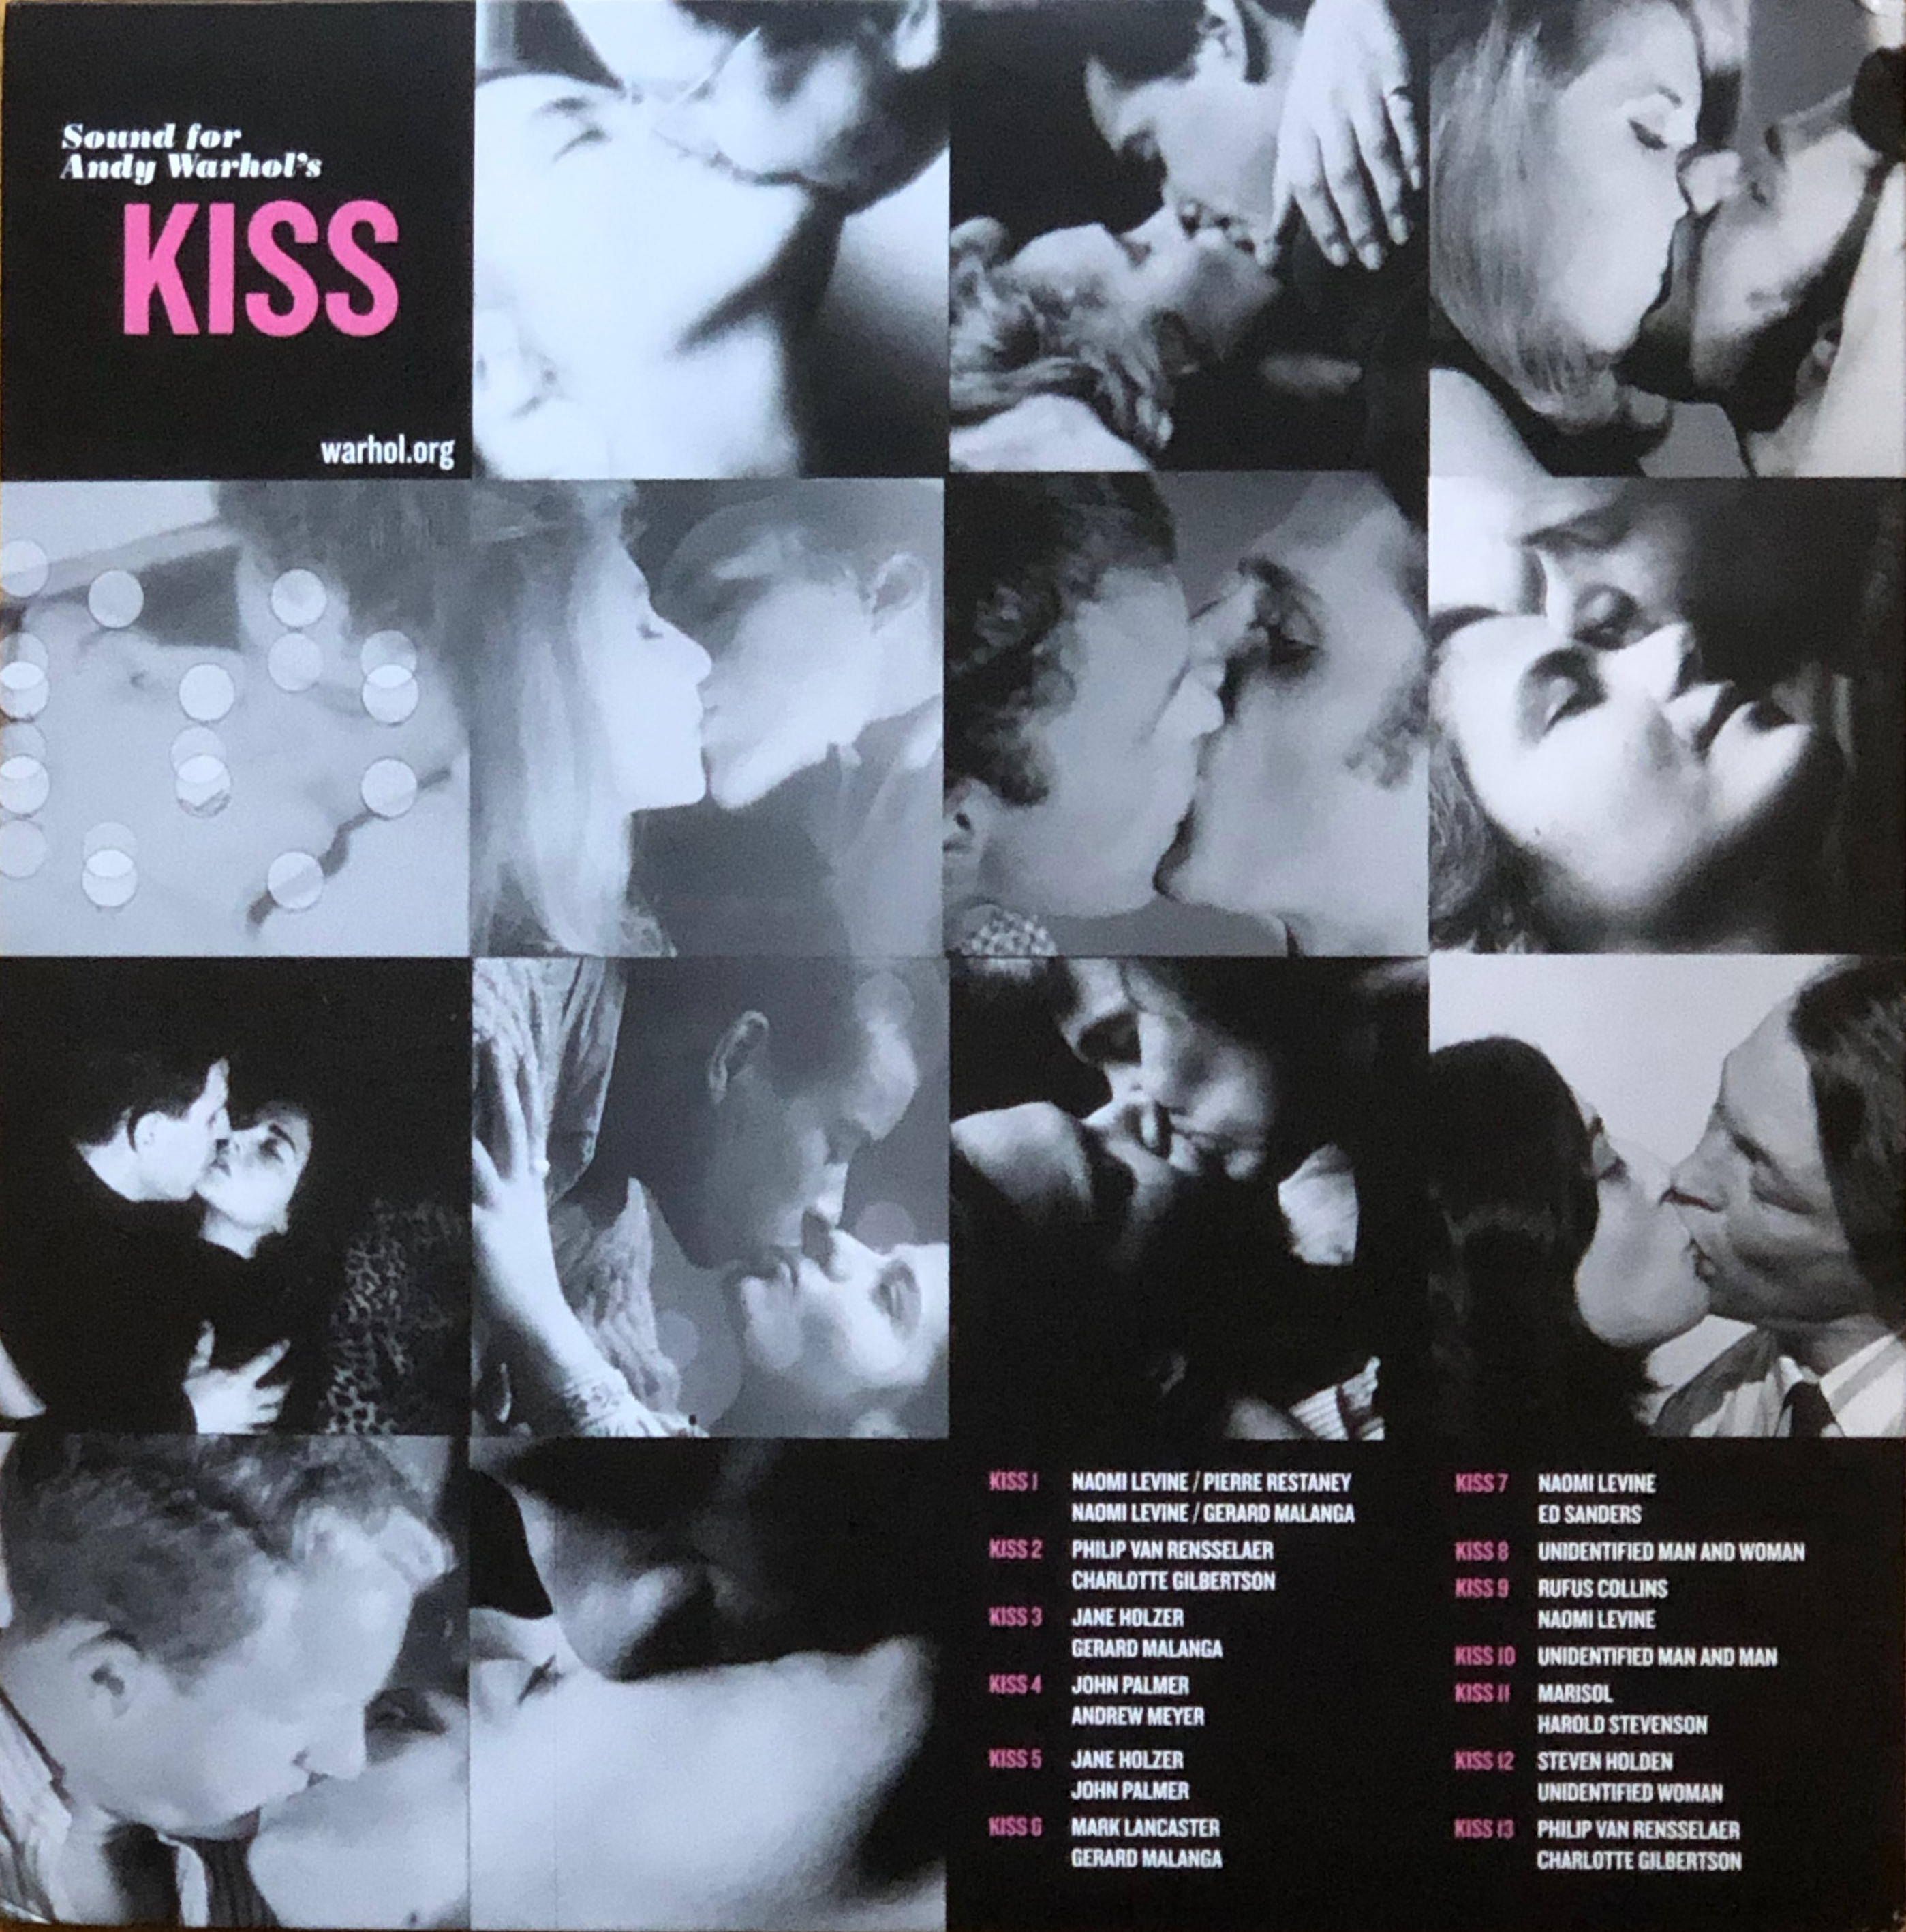 Sound for Kiss-bk cropped